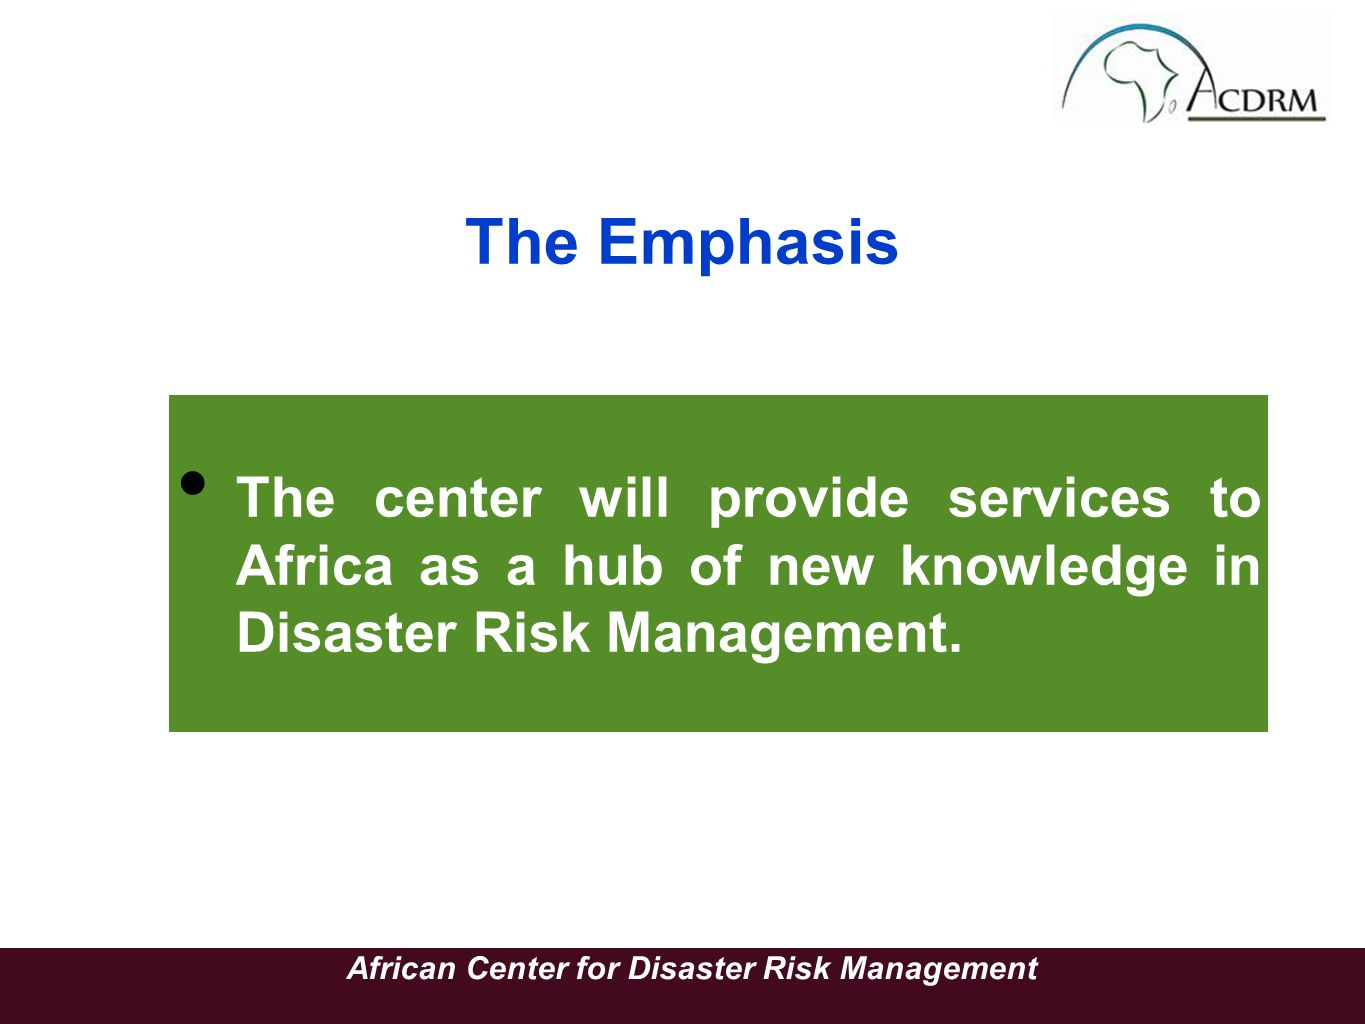 The Emphasis The center will provide services to Africa as a hub of new knowledge in Disaster Risk Management.